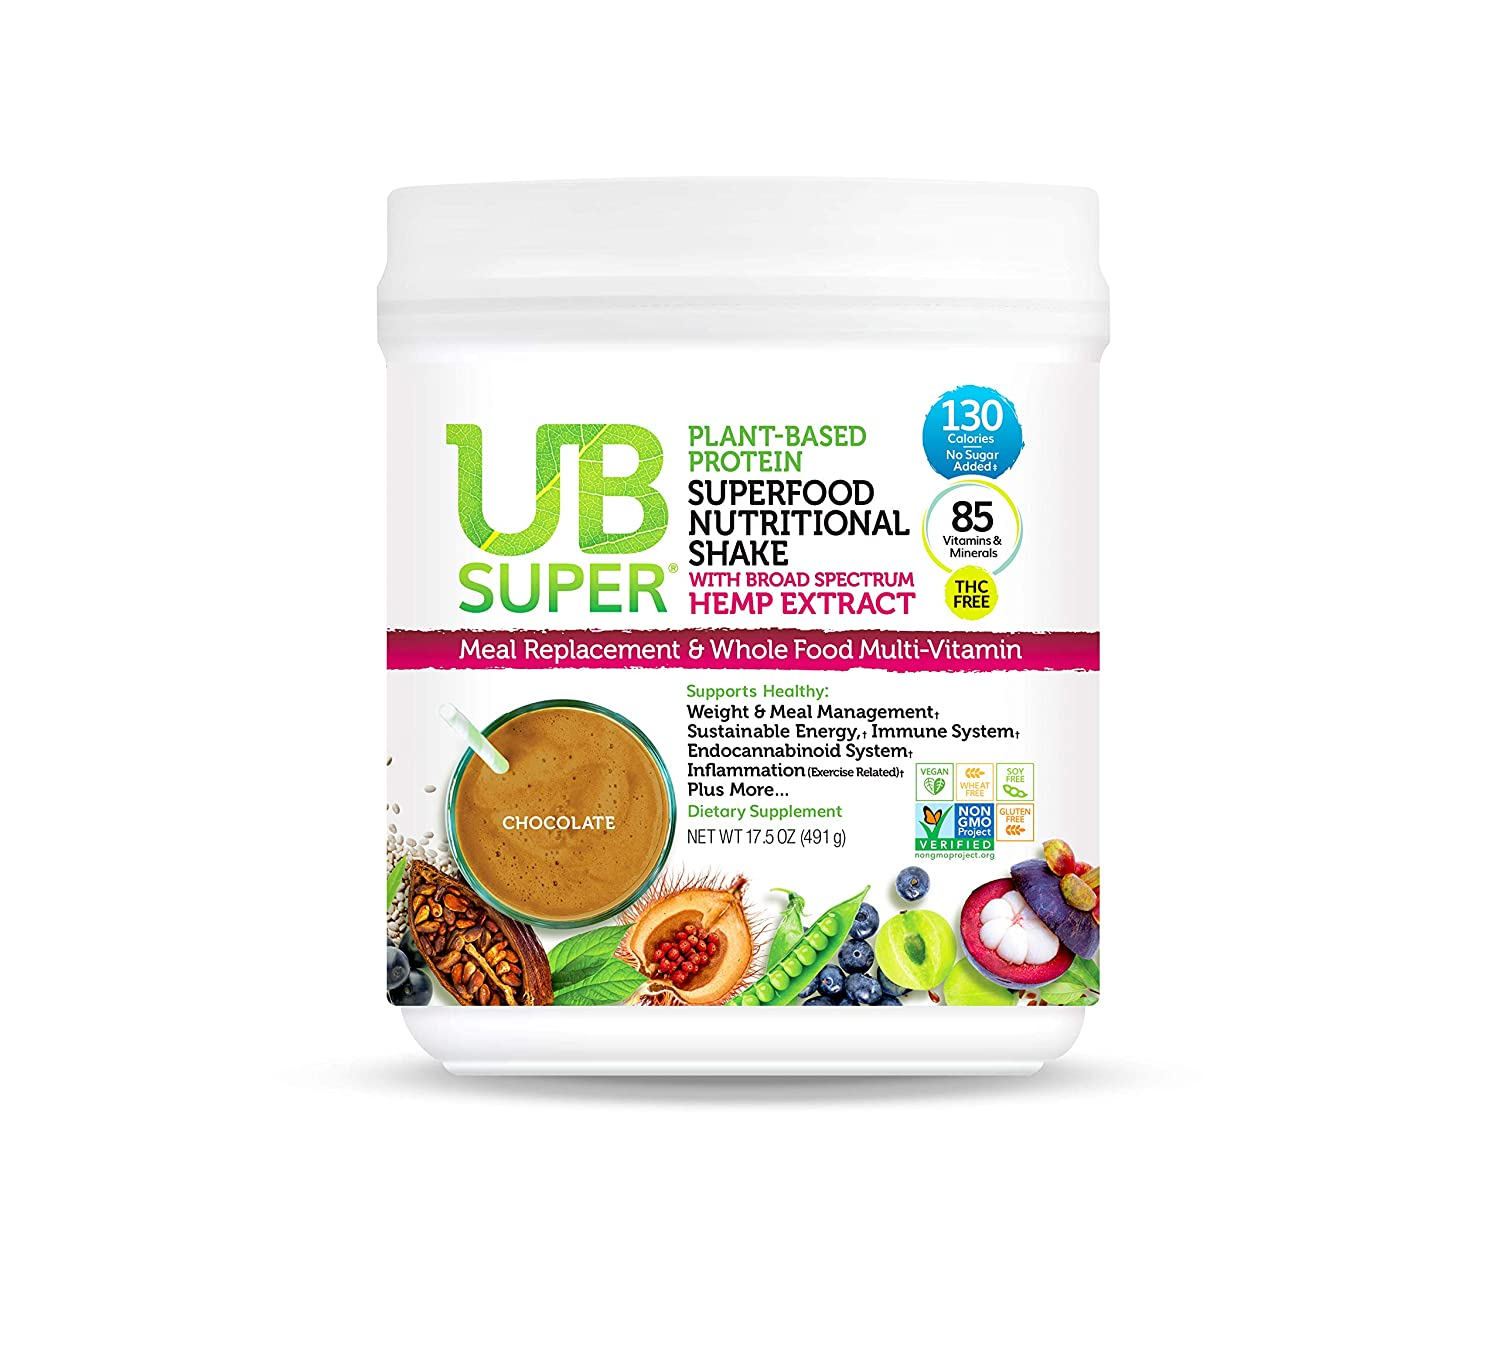 Our Latest Meal Replacement – UB Super – Broad Spectrum Hemp Extract – Protein Superfood Nutritional Shake – Vegan, Gluten Free, Non GMO, No Added Sugar, Nutrient Rich – Dietary Supplement Chocolate